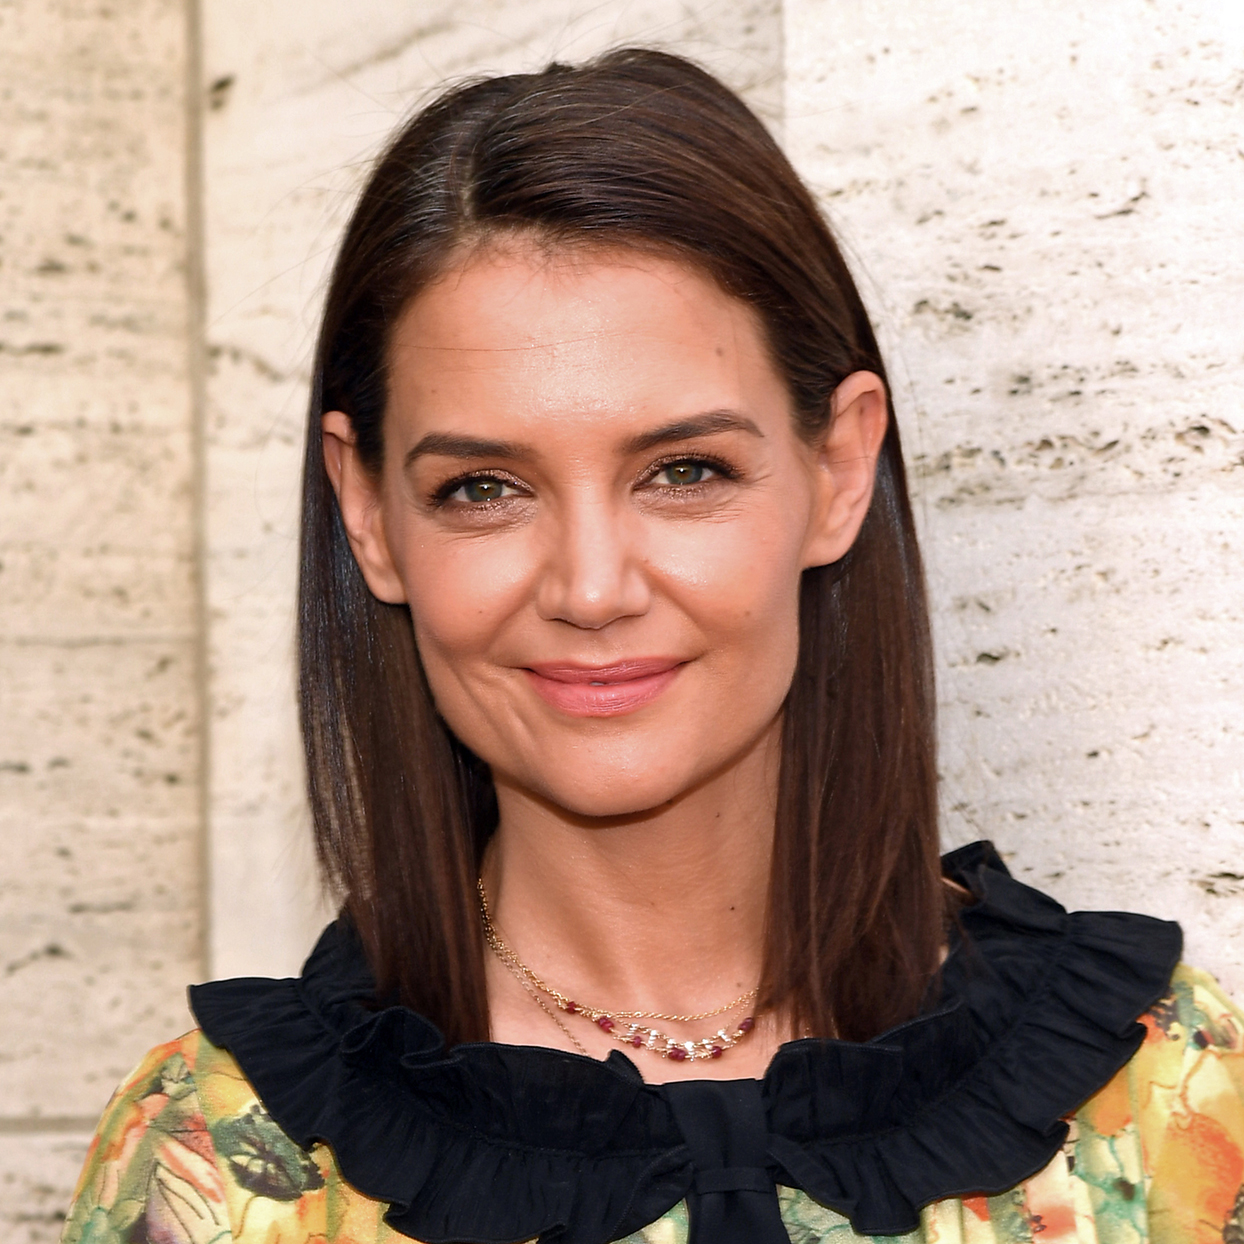 Katie Holmes Has Been Using This $6 Anti-Aging Moisturizer for Years